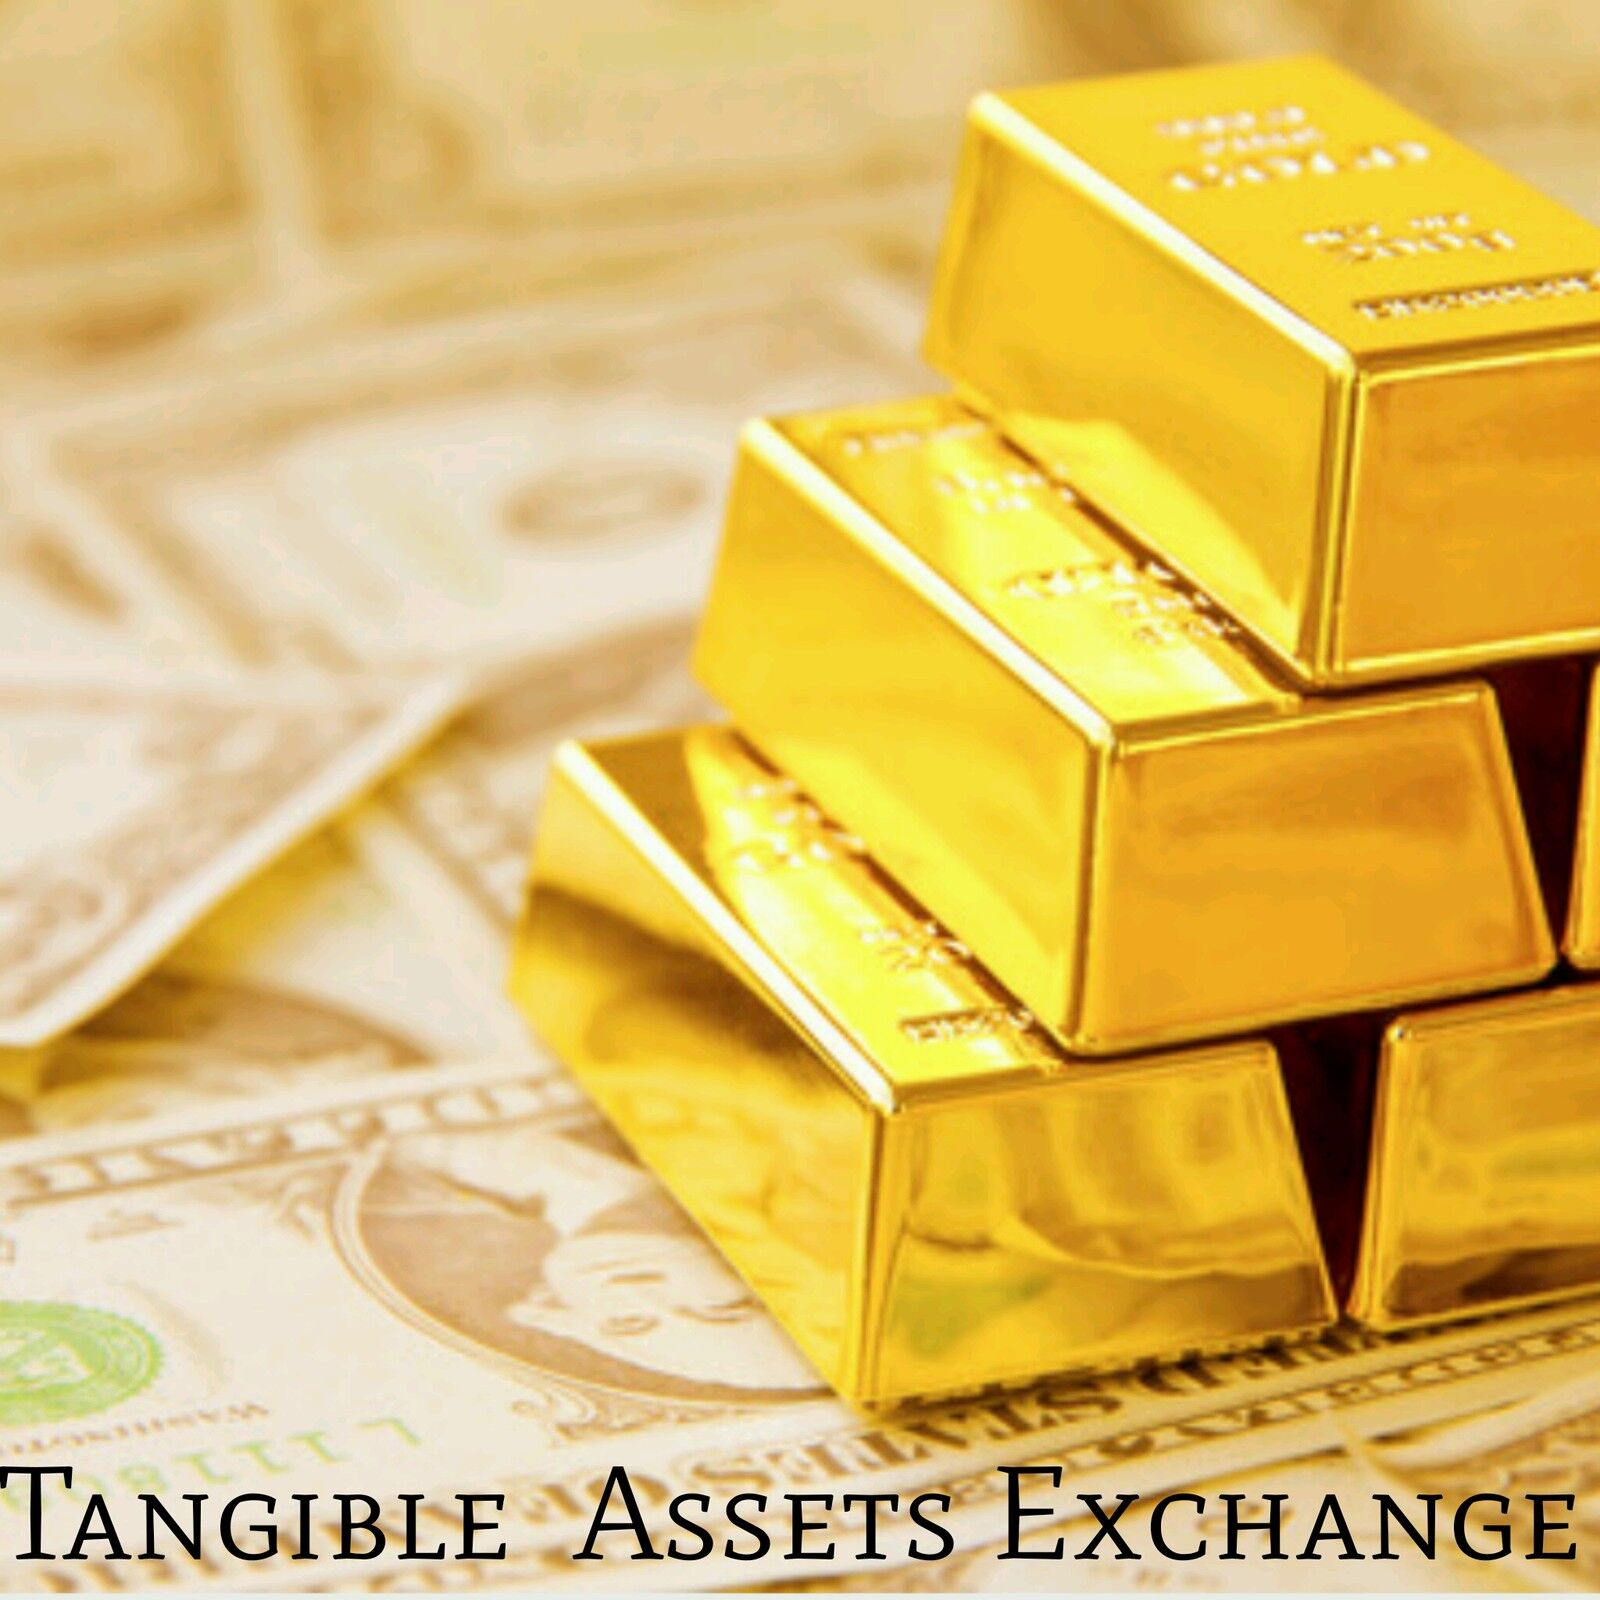 Tangible Assets Exchange